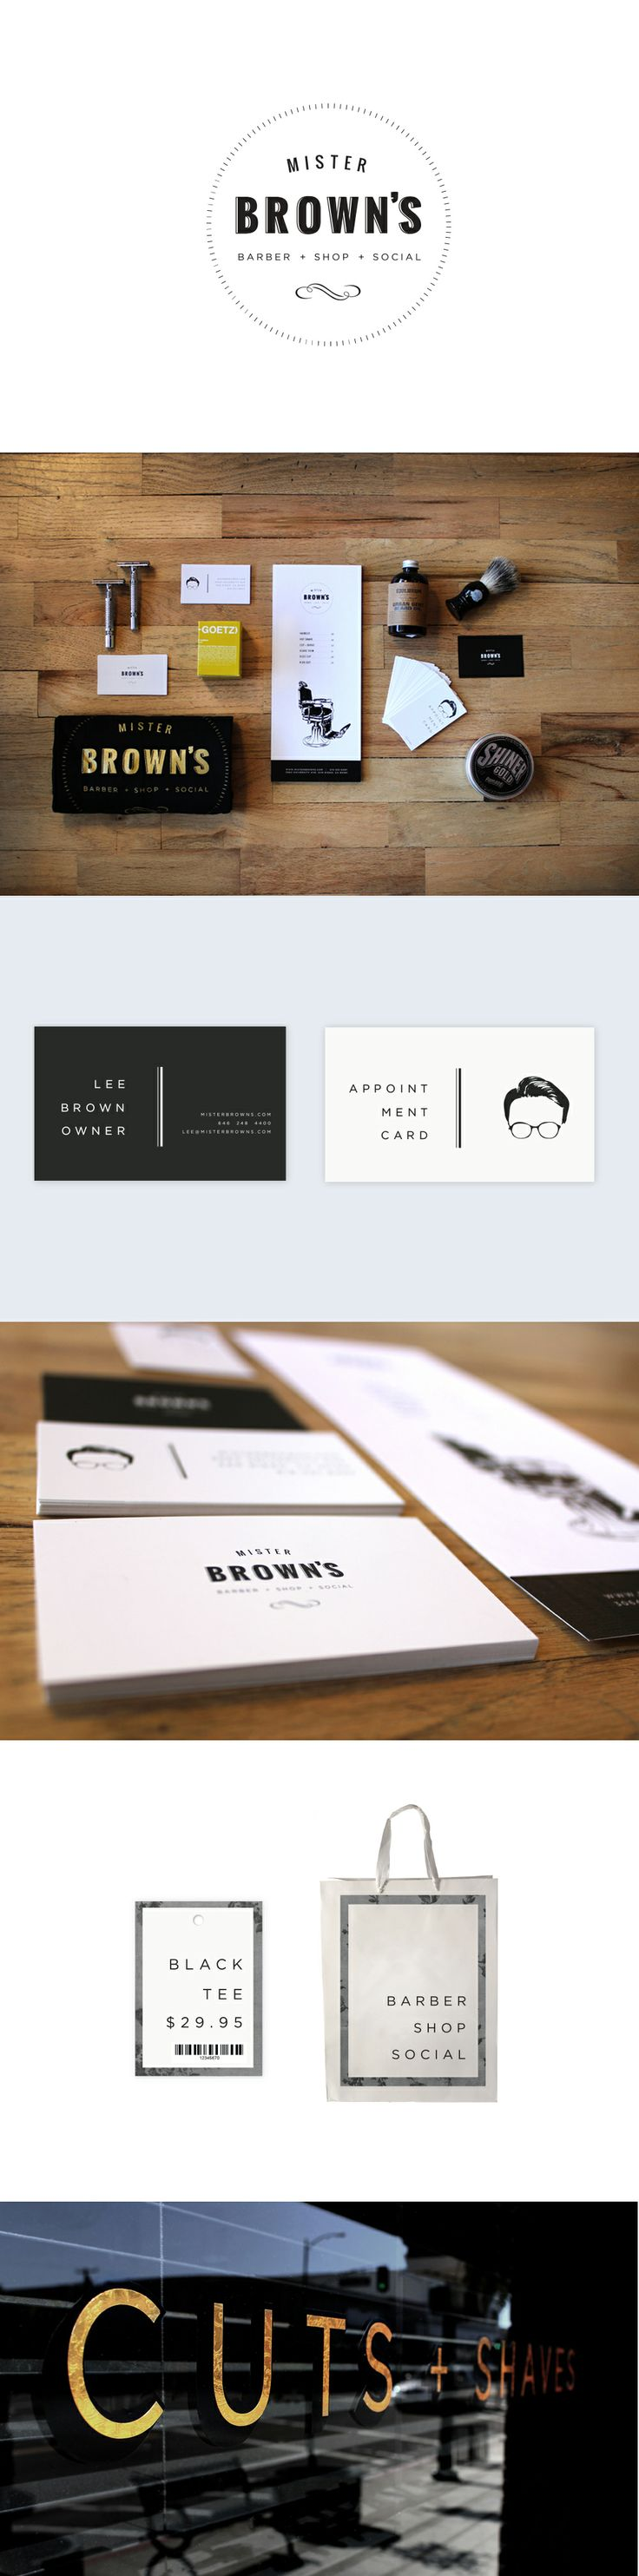 Branding for Mister Brown's - Modern Barbershop & Social Club in San Diego, CA.  Very classy identity. Stay Classy San Diego! :) Designed by Oui Will Agency .